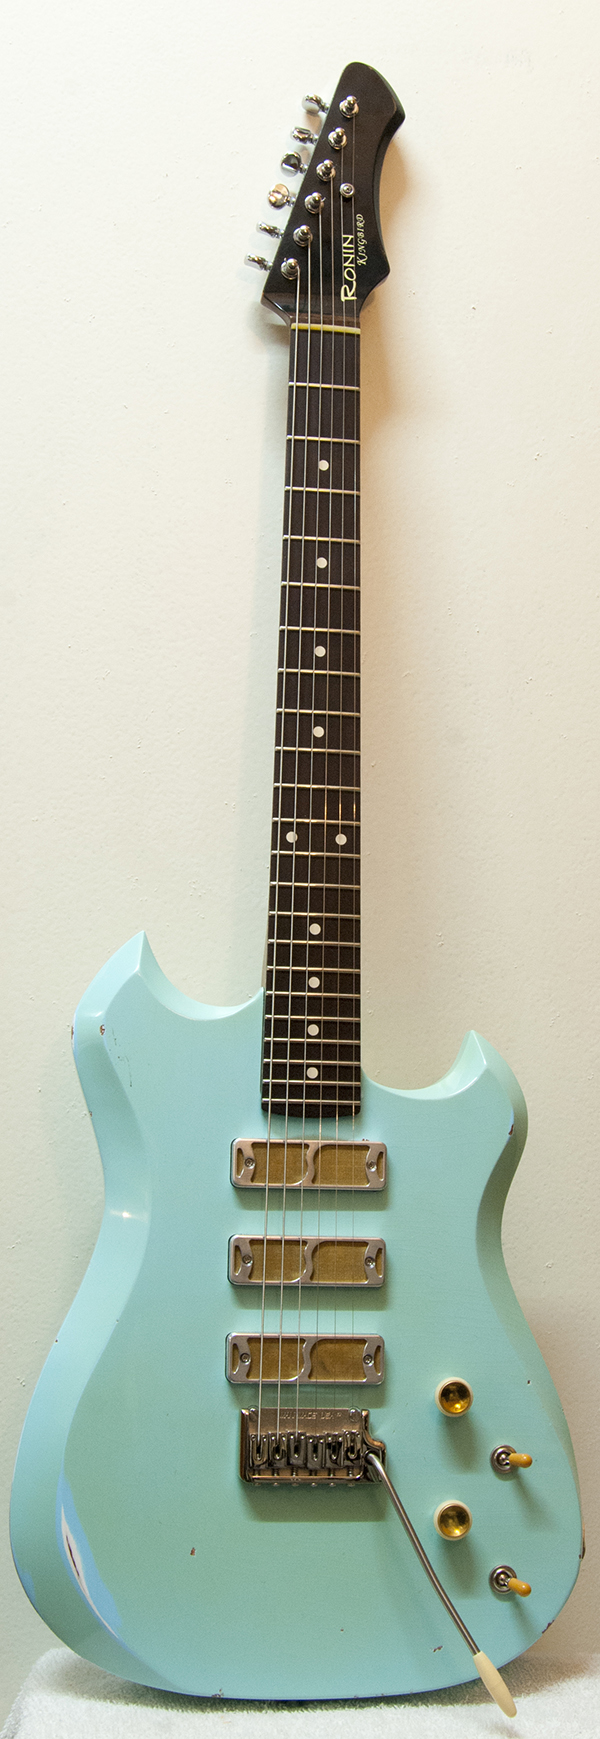 Daphne Blue Kingbird Foil Full copy.jpg